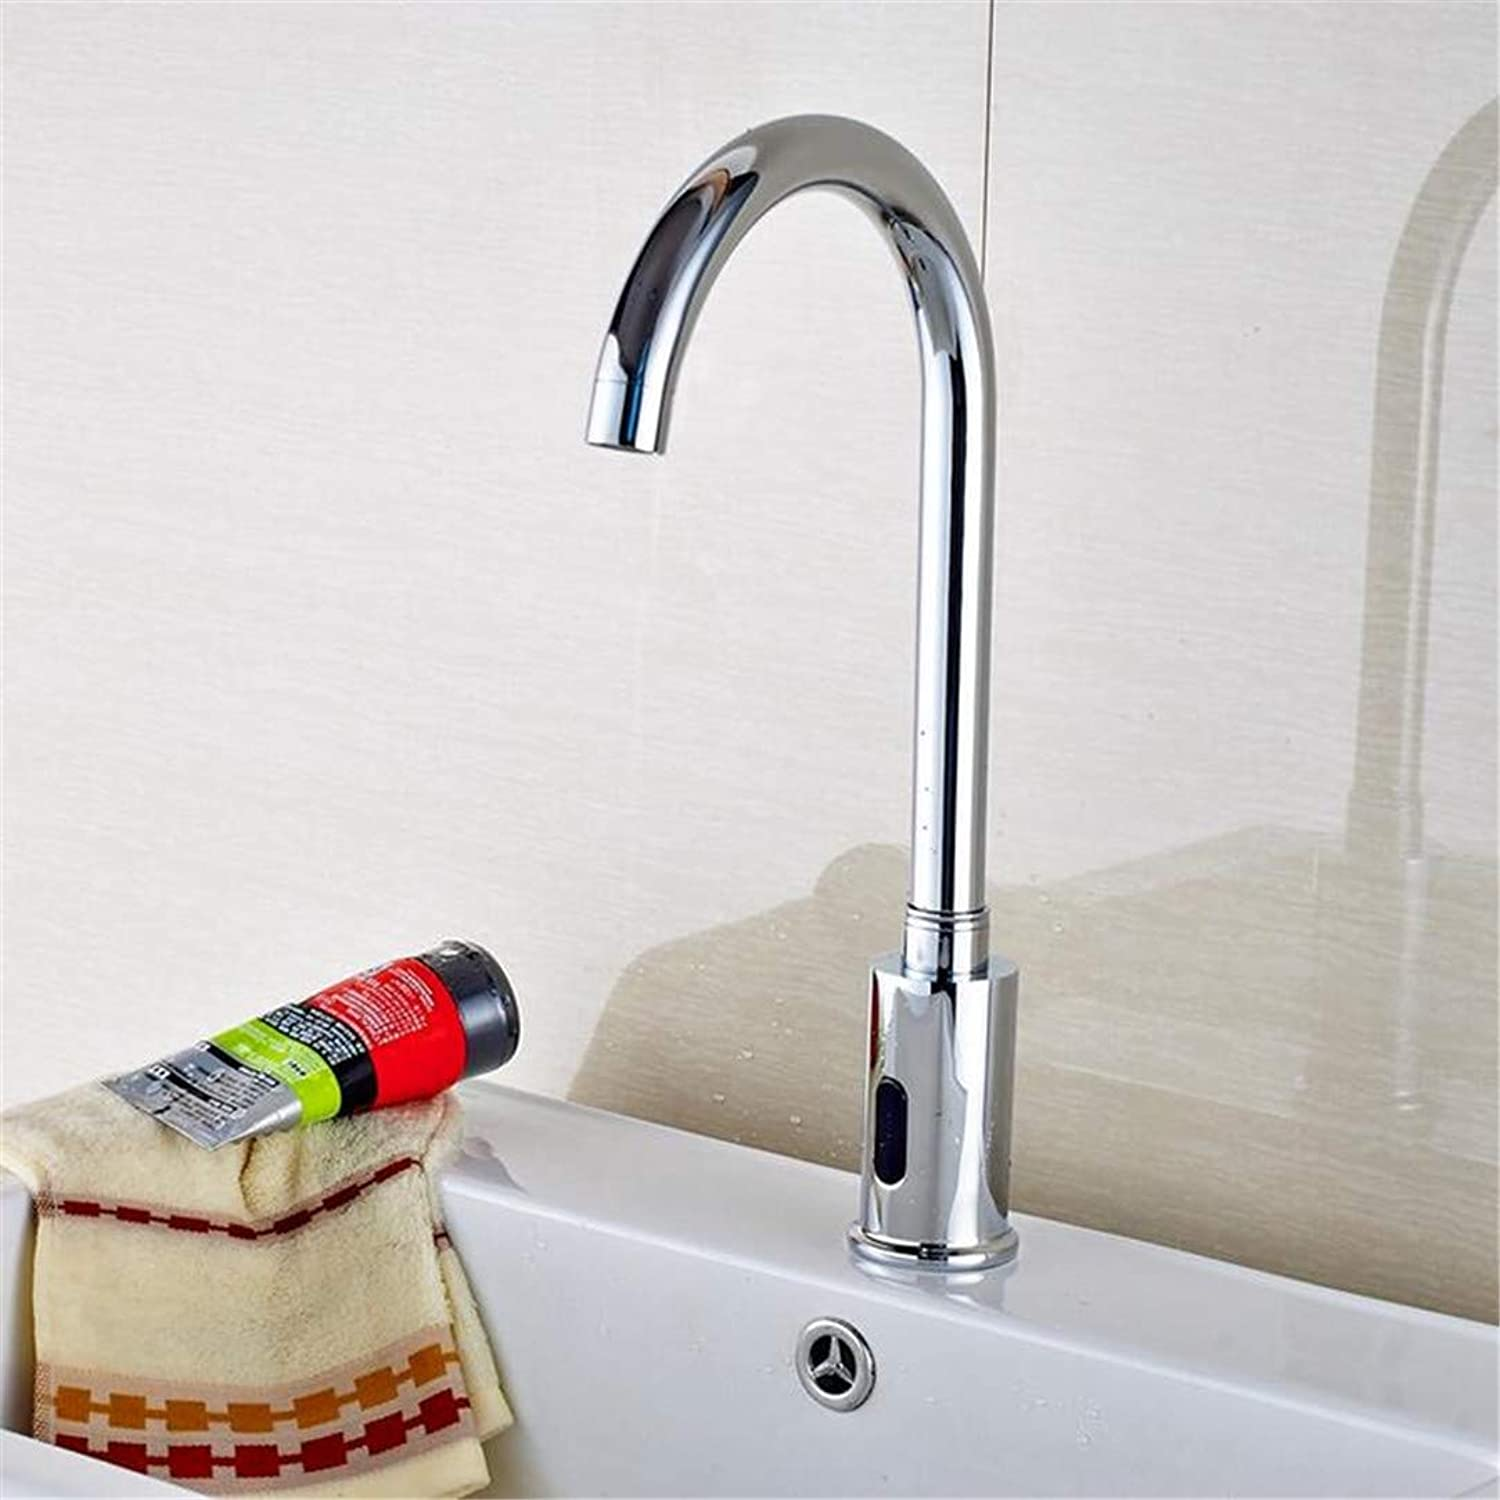 Faucets Basin Mixer Faucet Polished Chrome Bathroom Touchless Cold Tap